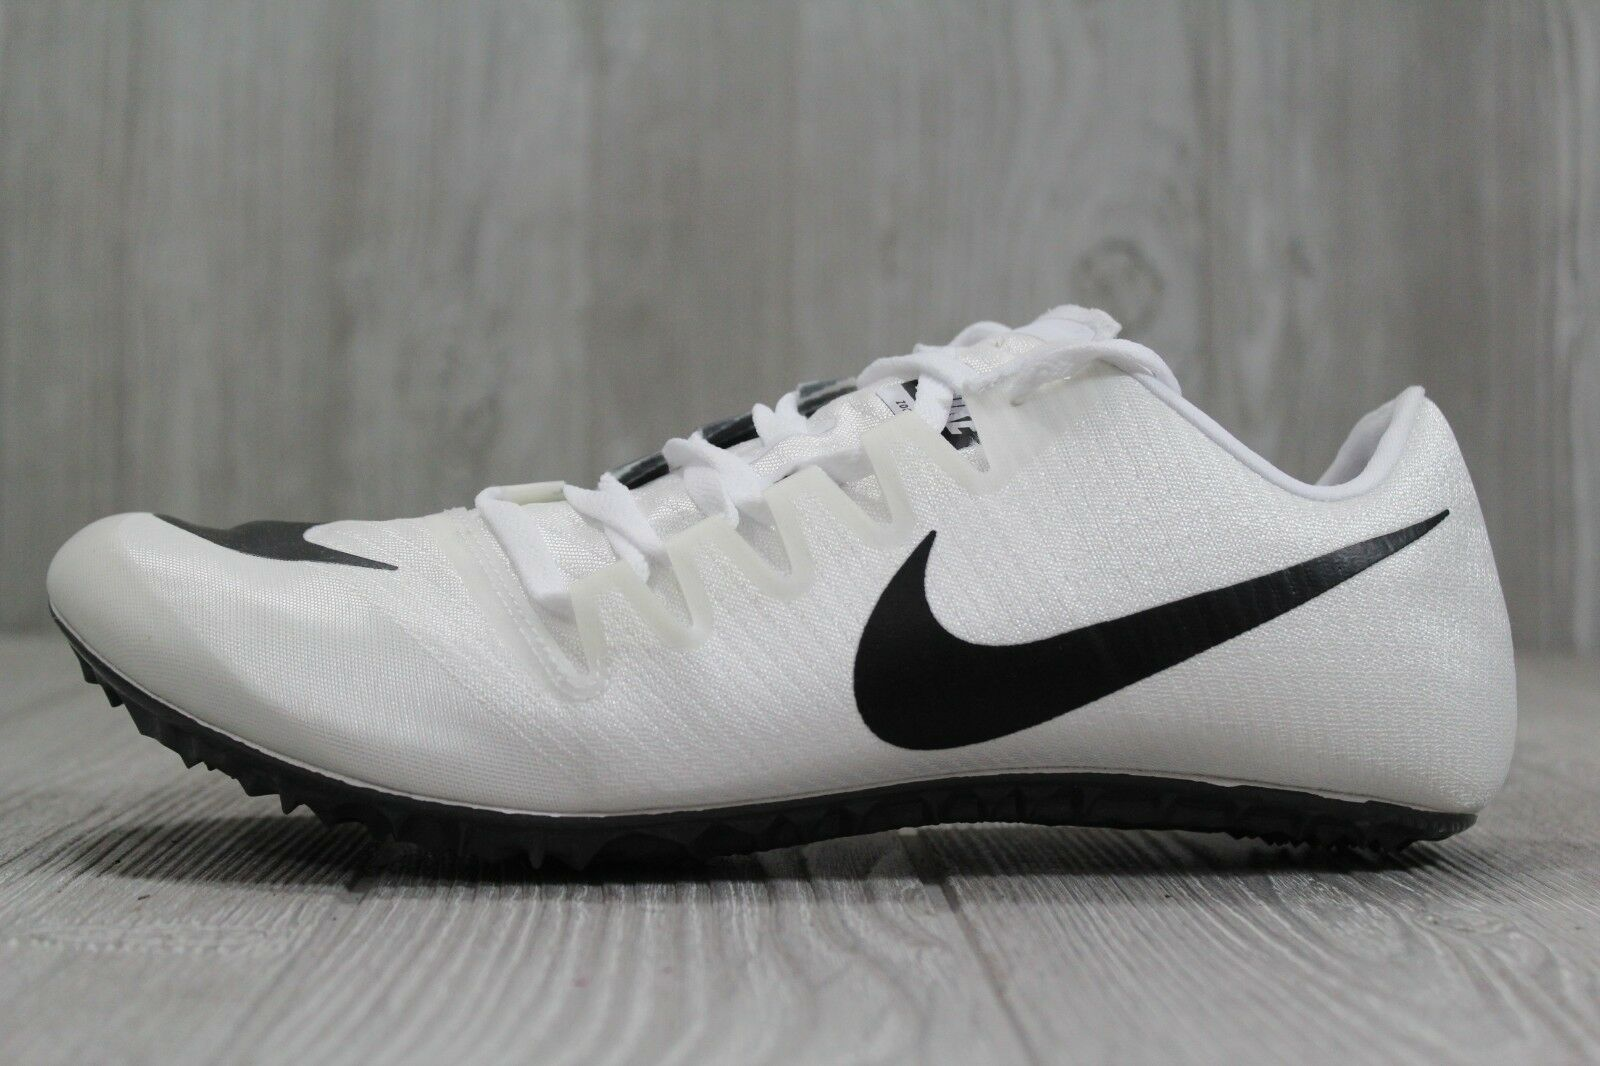 36 New Nike Ja Fly 3 Sprint Spikes Track shoes White Mens 5 - 11.5 865633 102